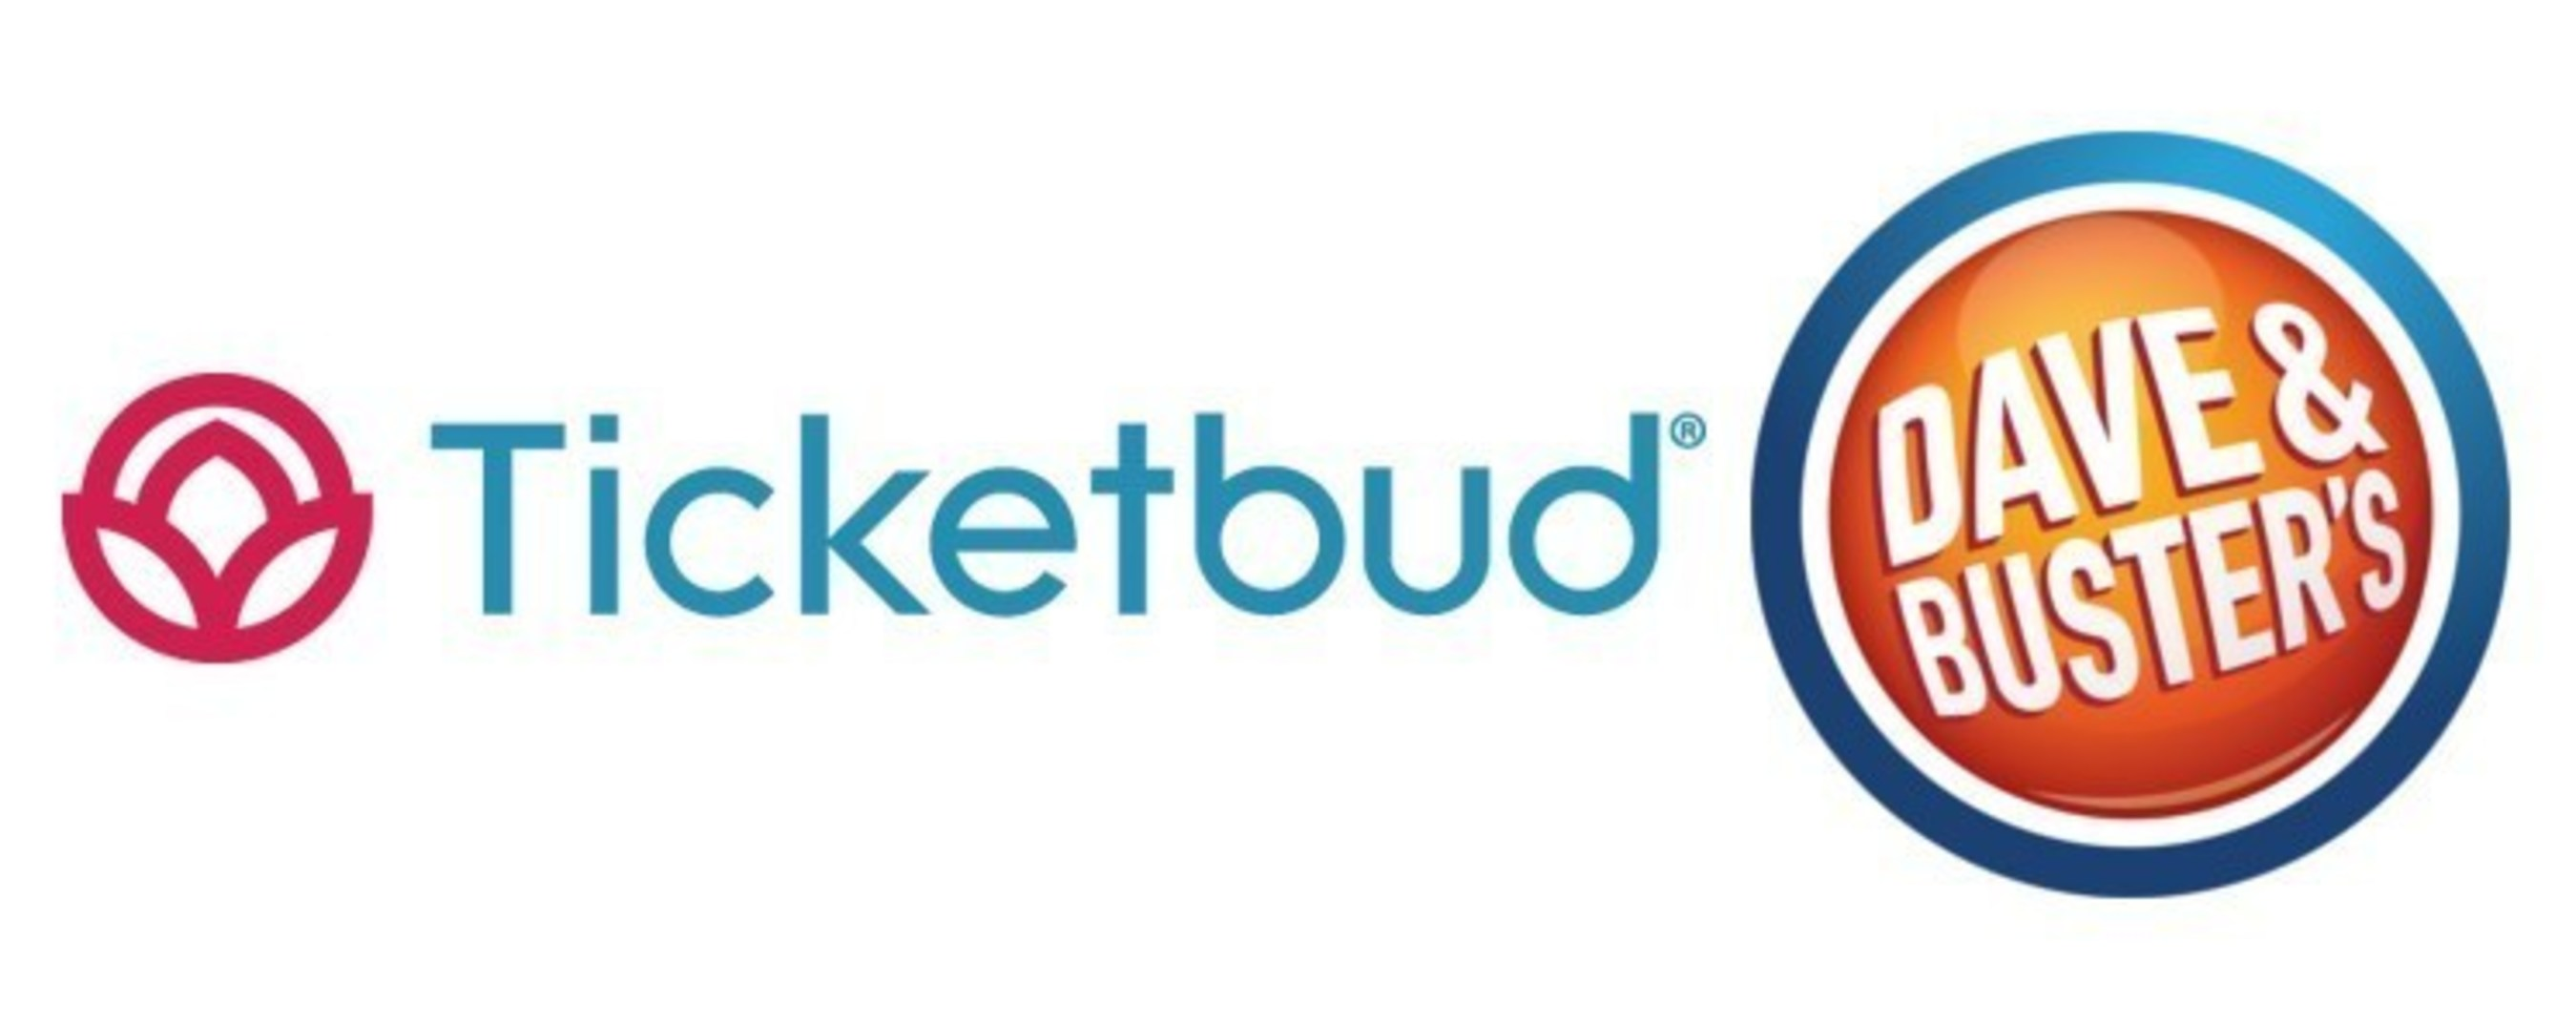 Ticketbud Partners to Manage Dave & Buster's Event Campaigns Nationwide